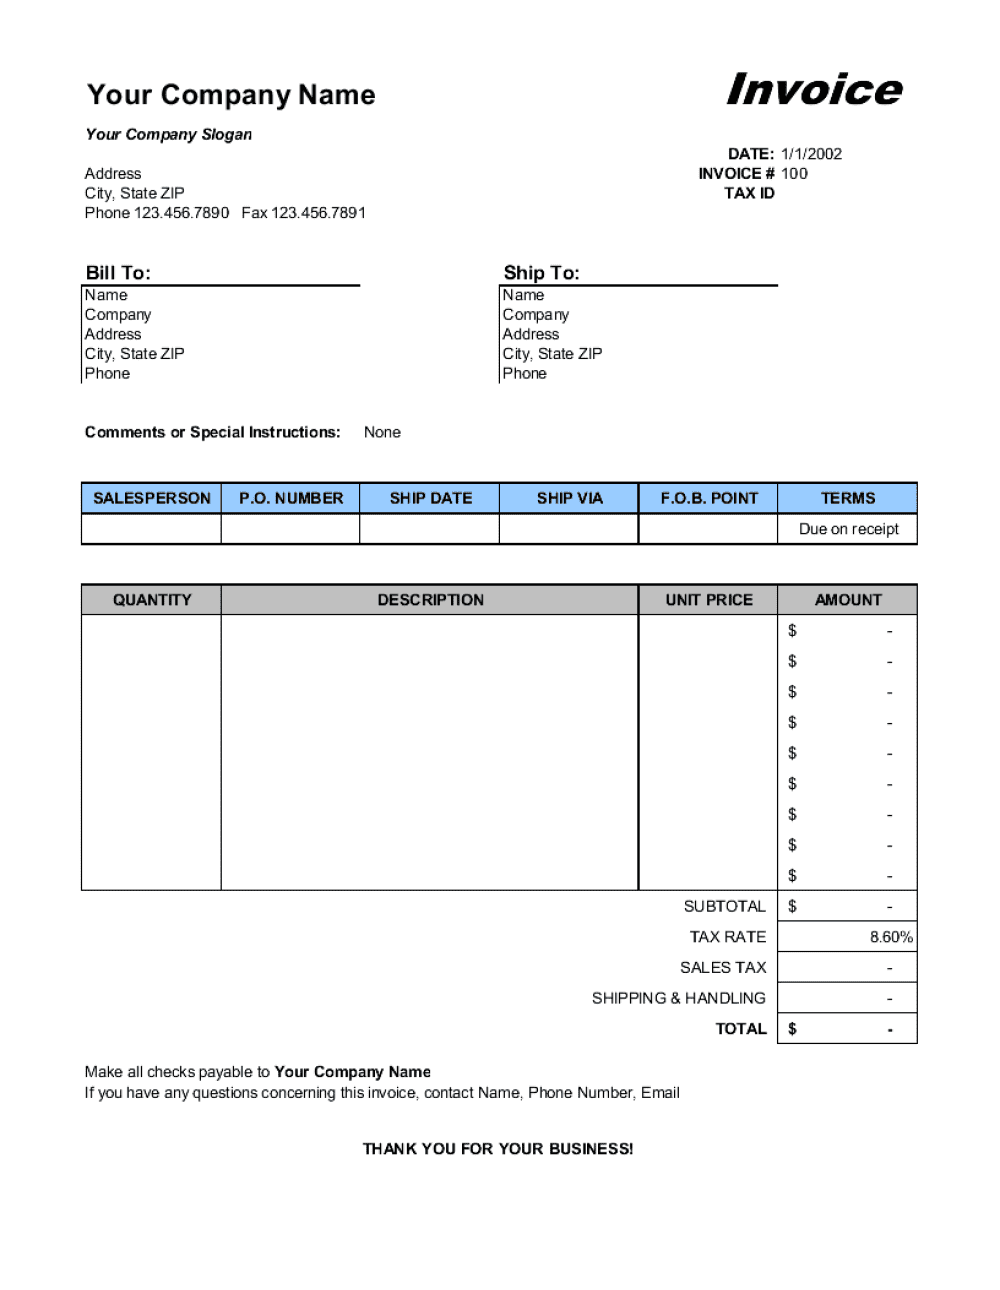 Sales Invoice - Excel Template |Business-In-A-Box™